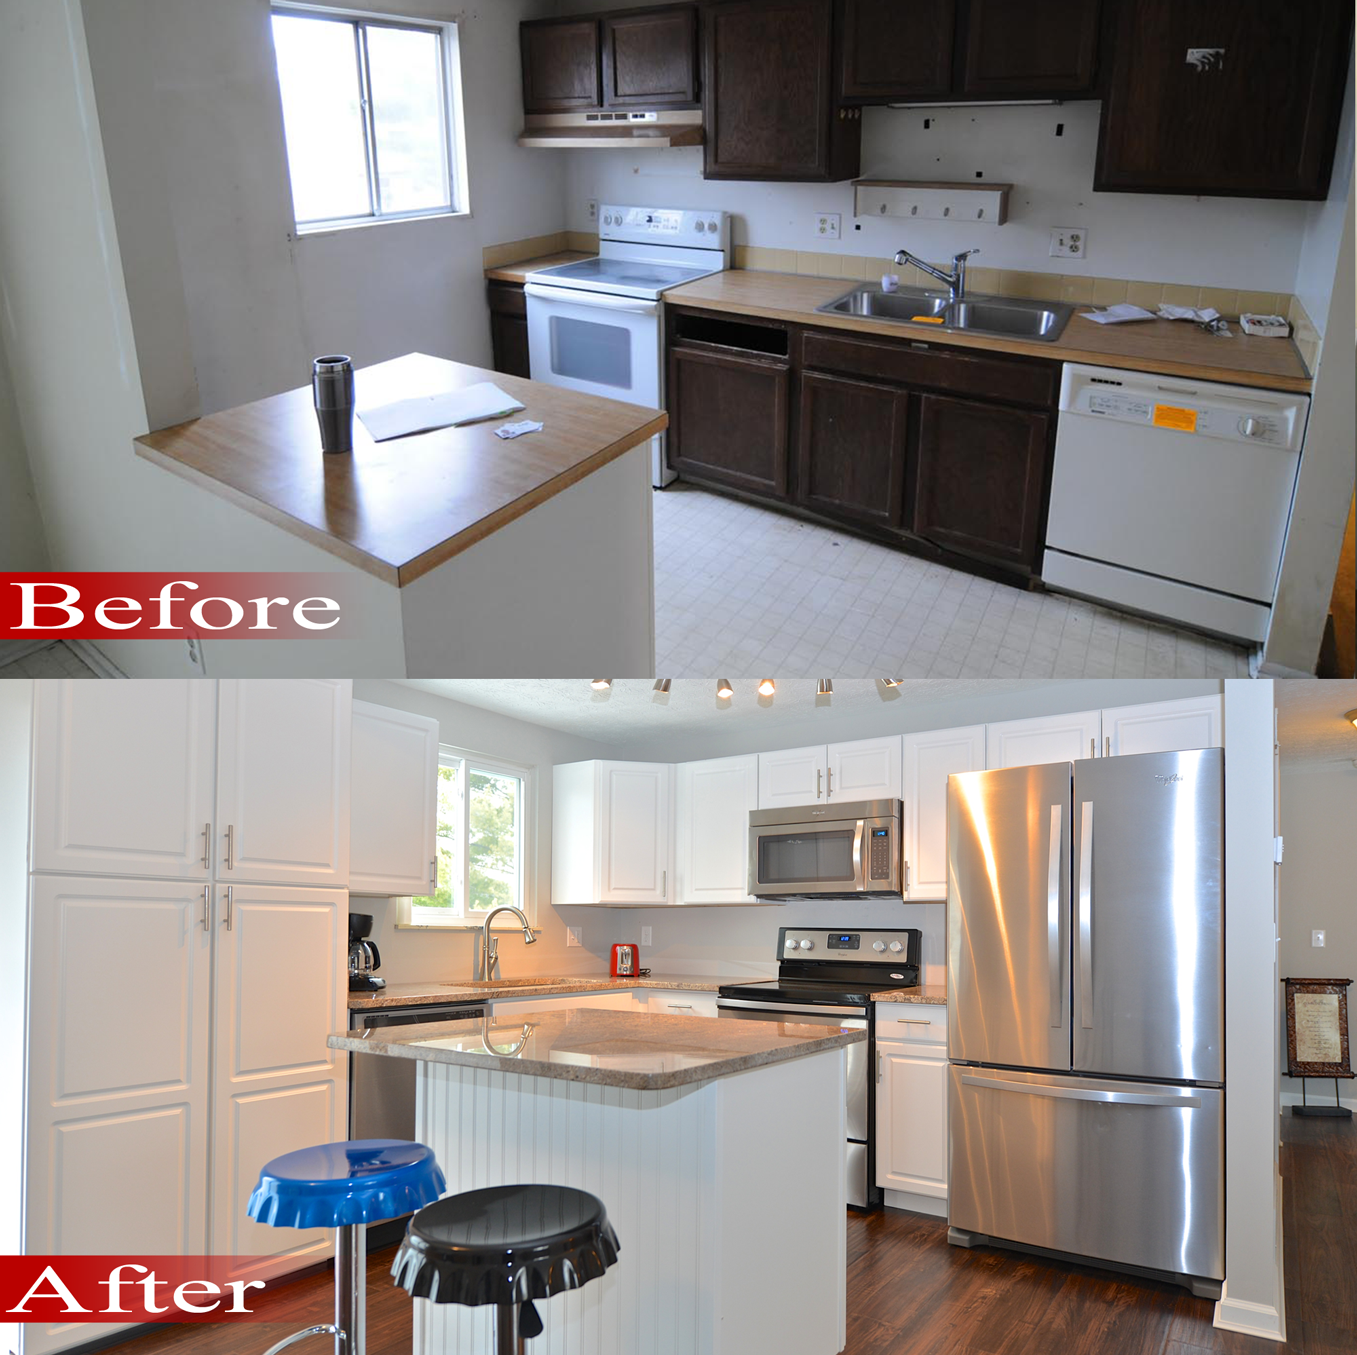 Nj Kitchen Remodeling Property: Ohio Property Brothers